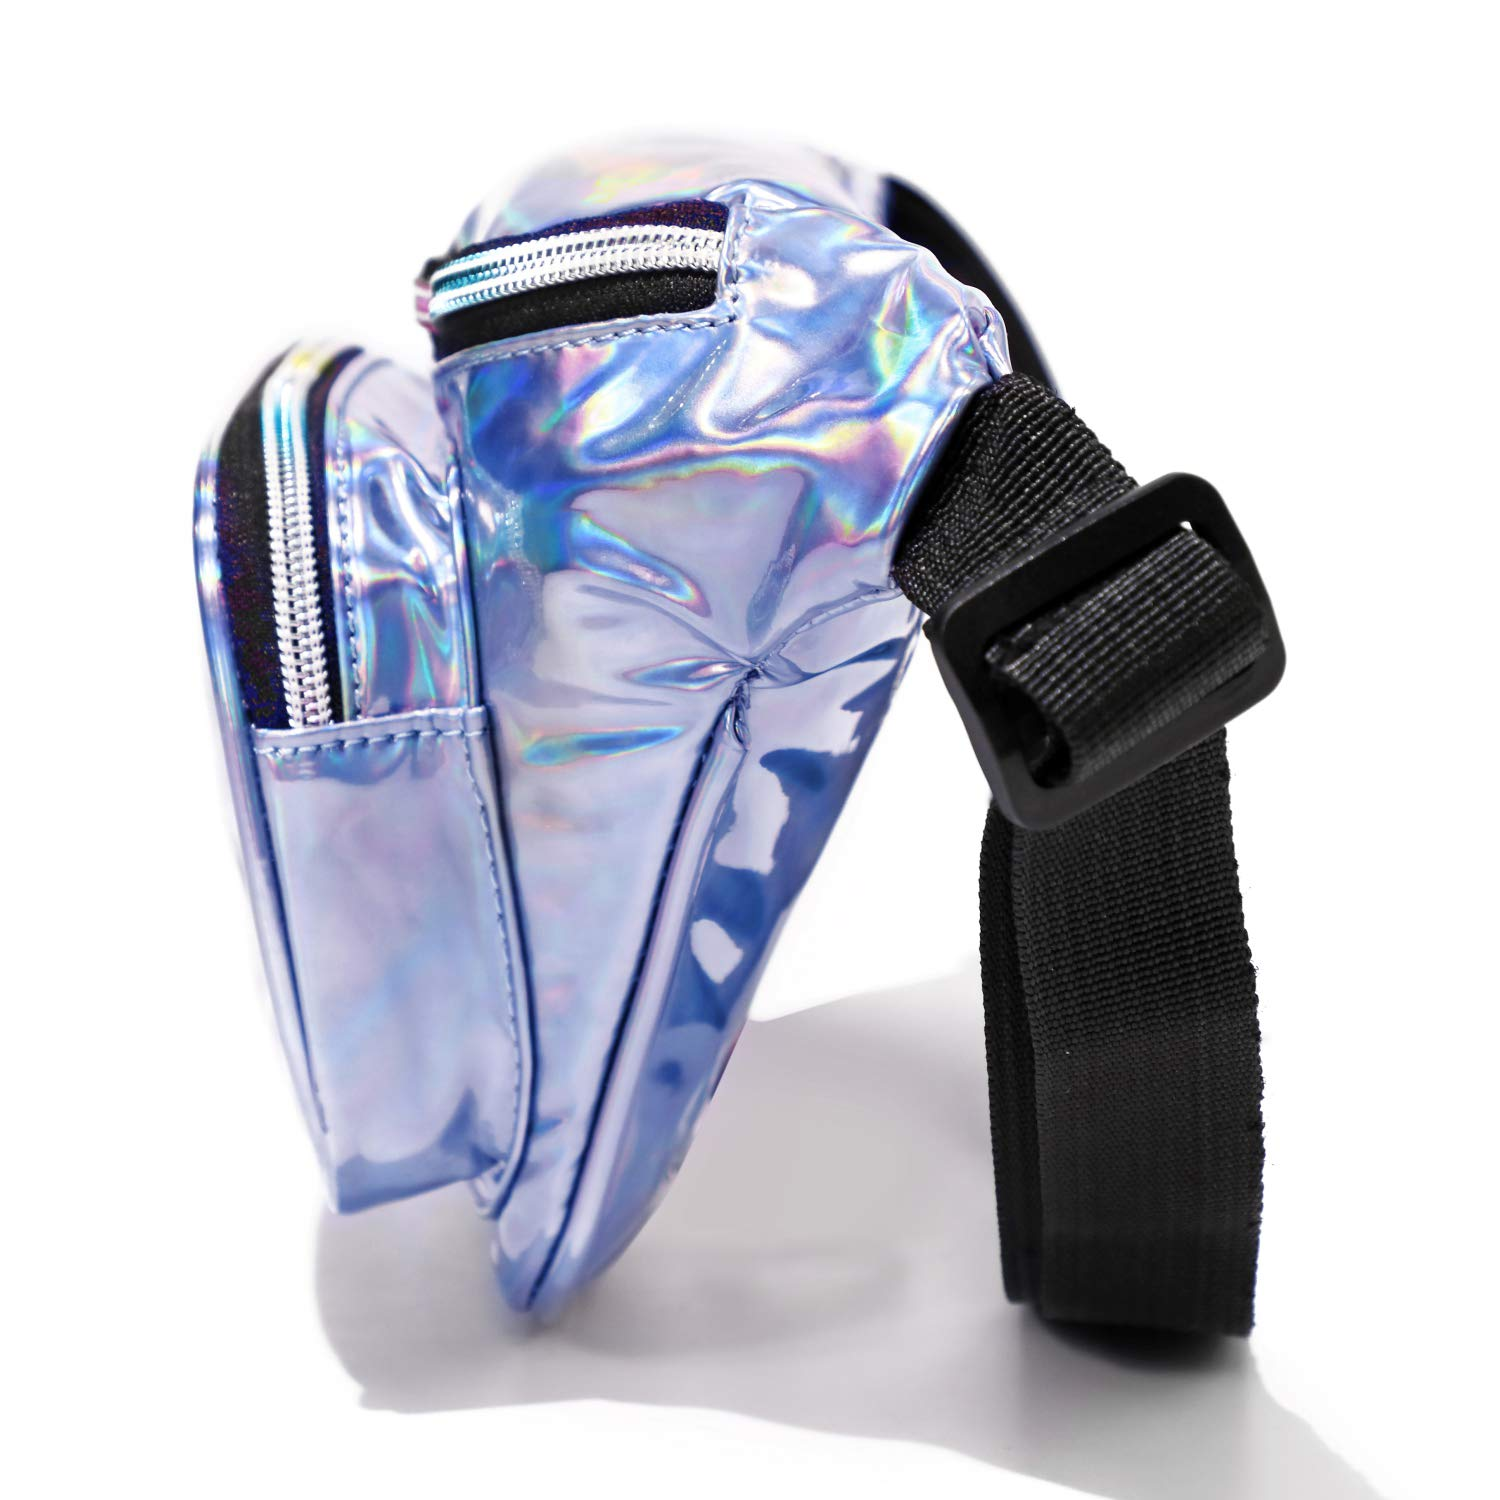 Packism Holographic Fanny Pack, Fanny Pack for Women Cute with Three Pockets Adjustable Belt Bum Bag Waist Pack for Rave, Festival, Travel, Party